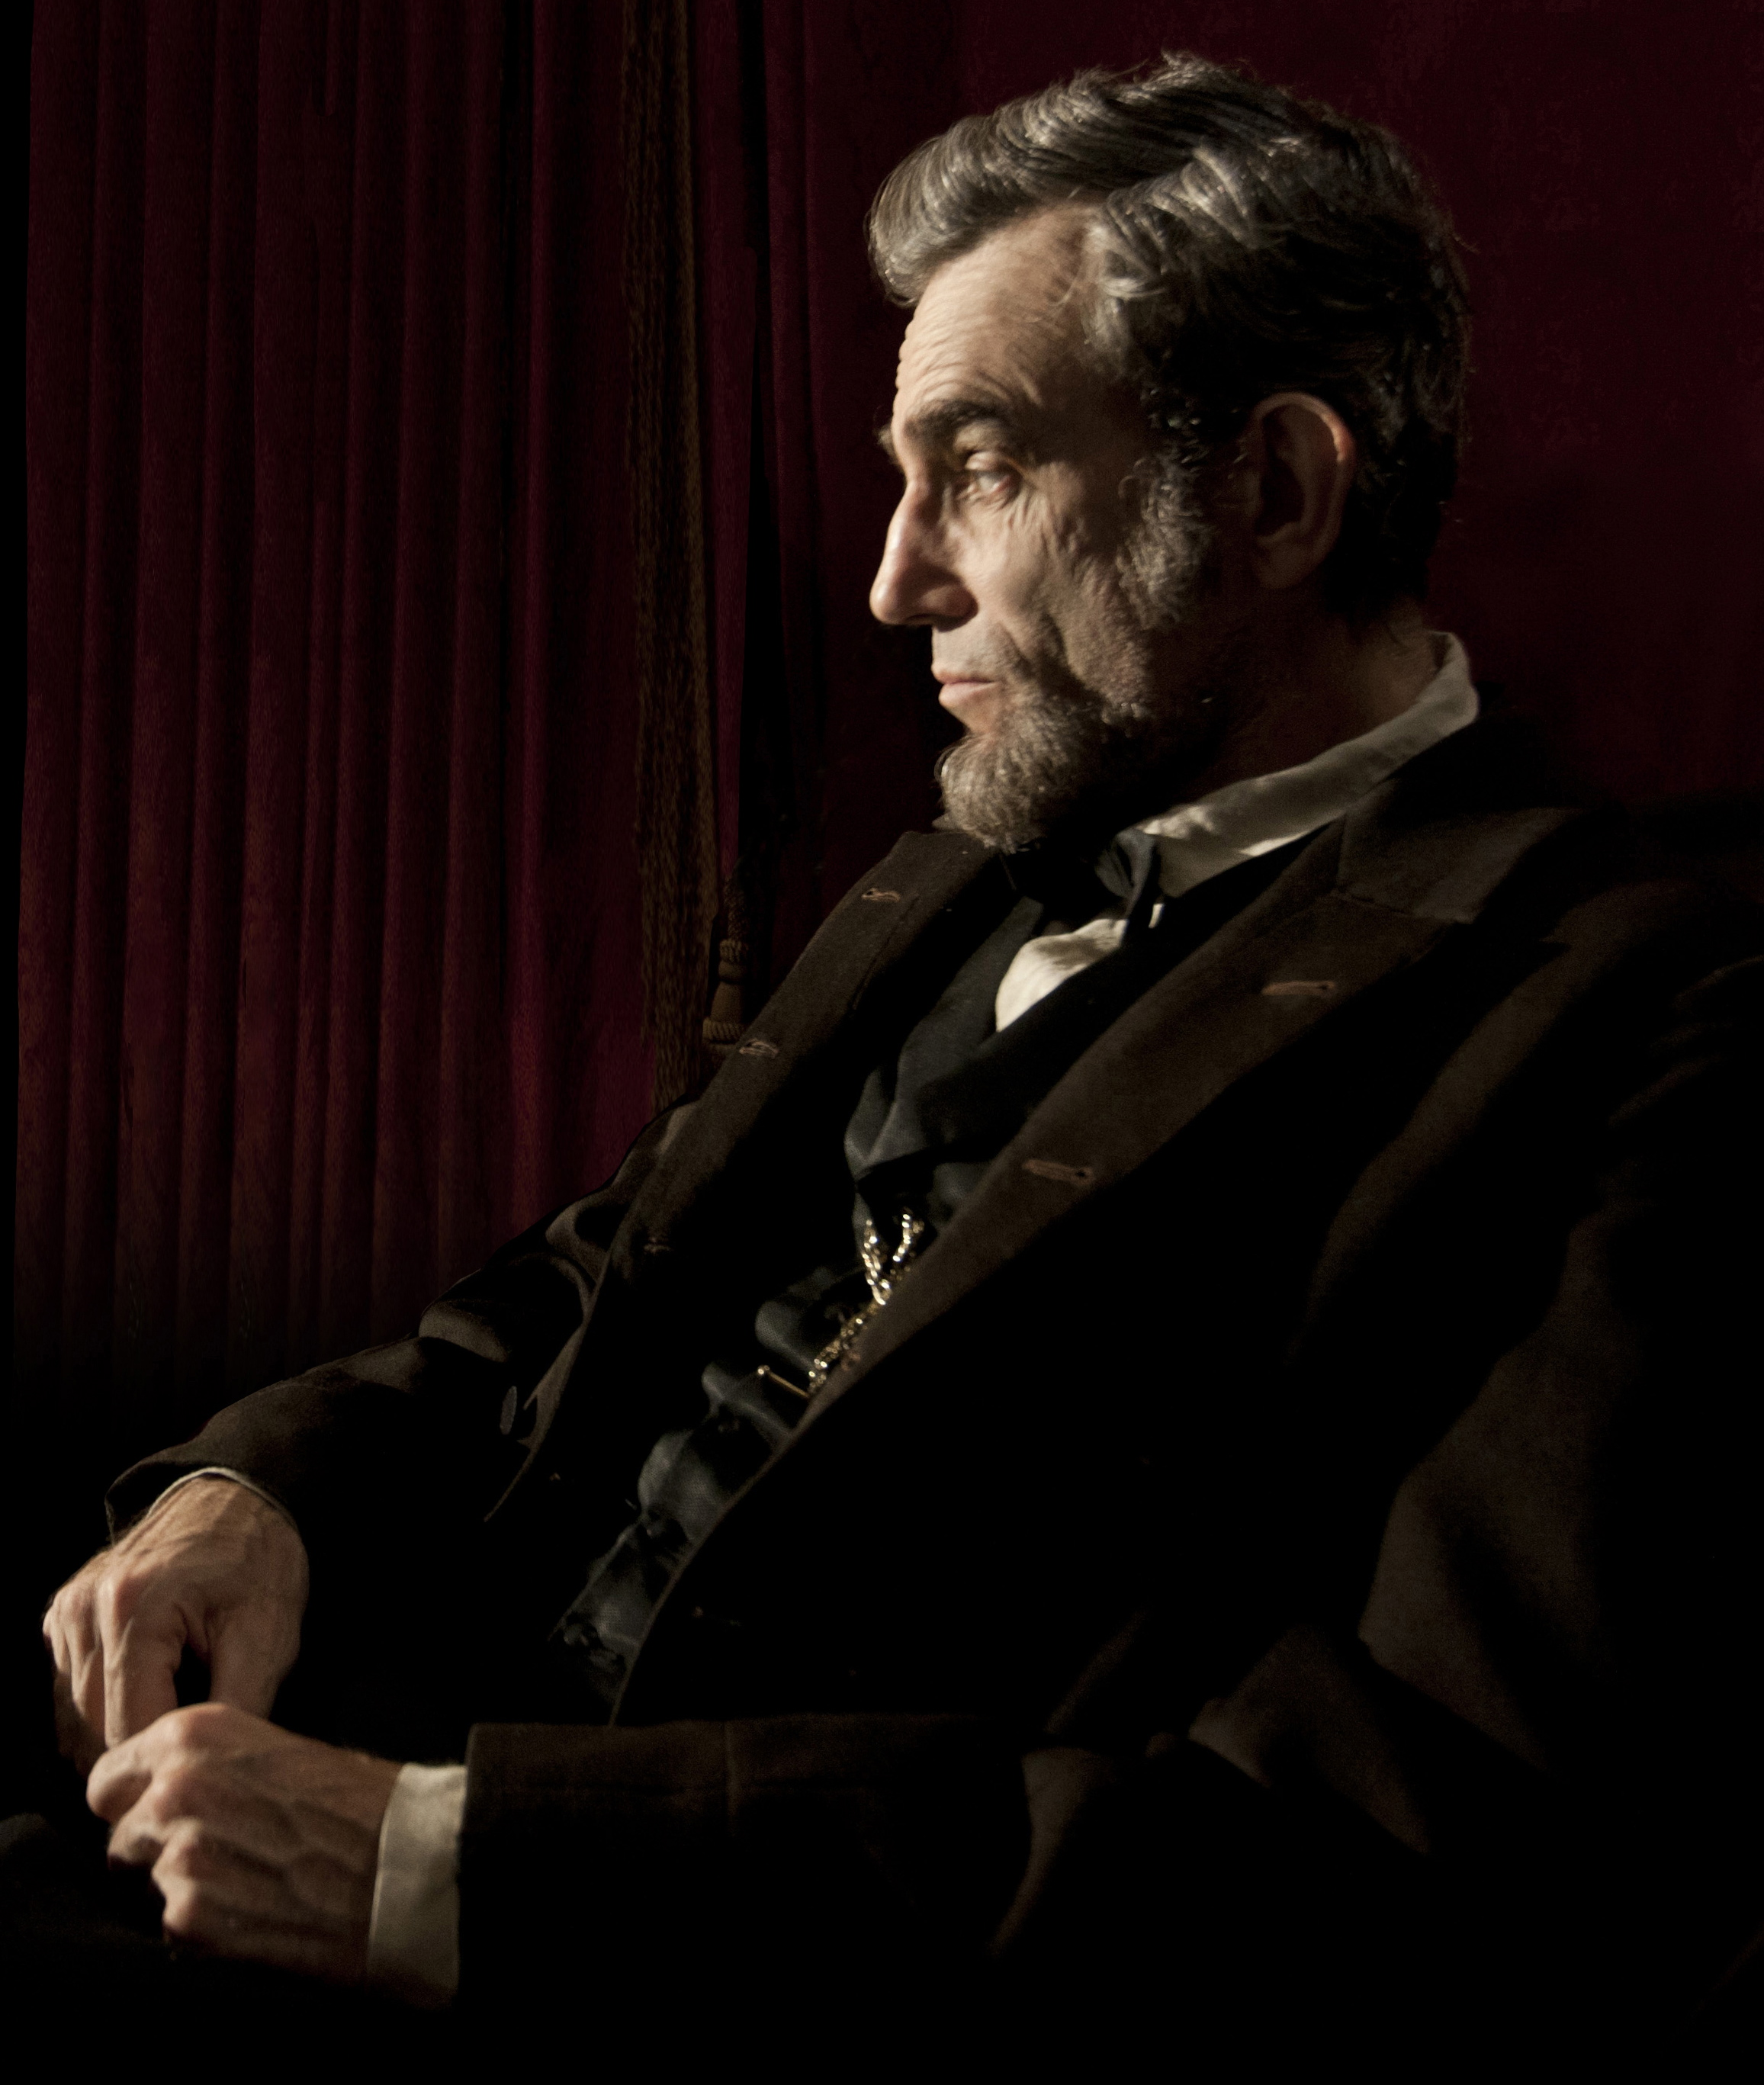 lincoln by steven spielberg unite trailer Watch lincoln movie trailers, exclusive videos, interviews from the cast, movie   steven spielberg has talked for years about doing a film on abraham lincoln, but   lincoln pursues a course of action designed to end the war, unite the country.